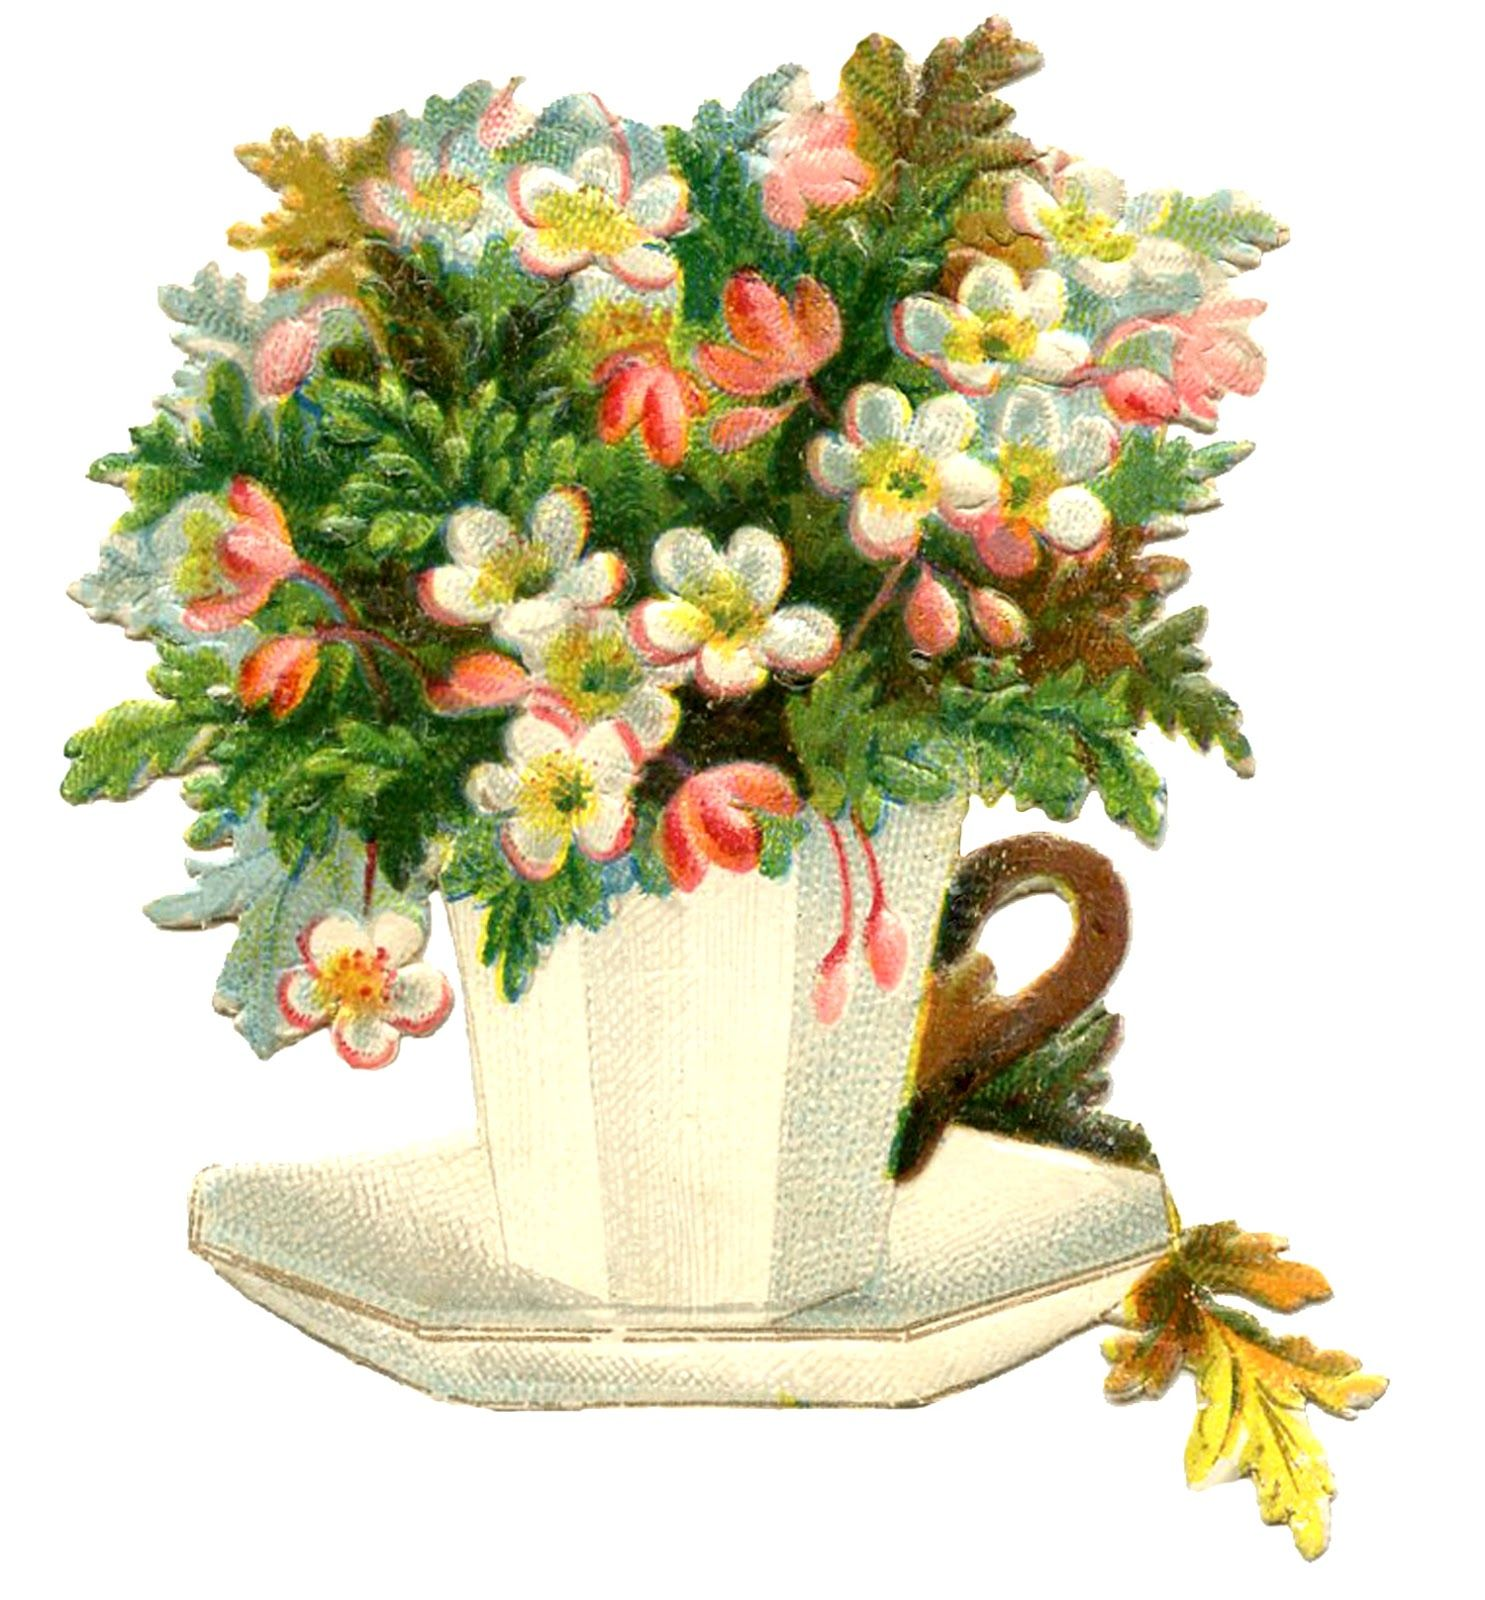 Teapot clipart mothers day. Vintage teacup image flowers